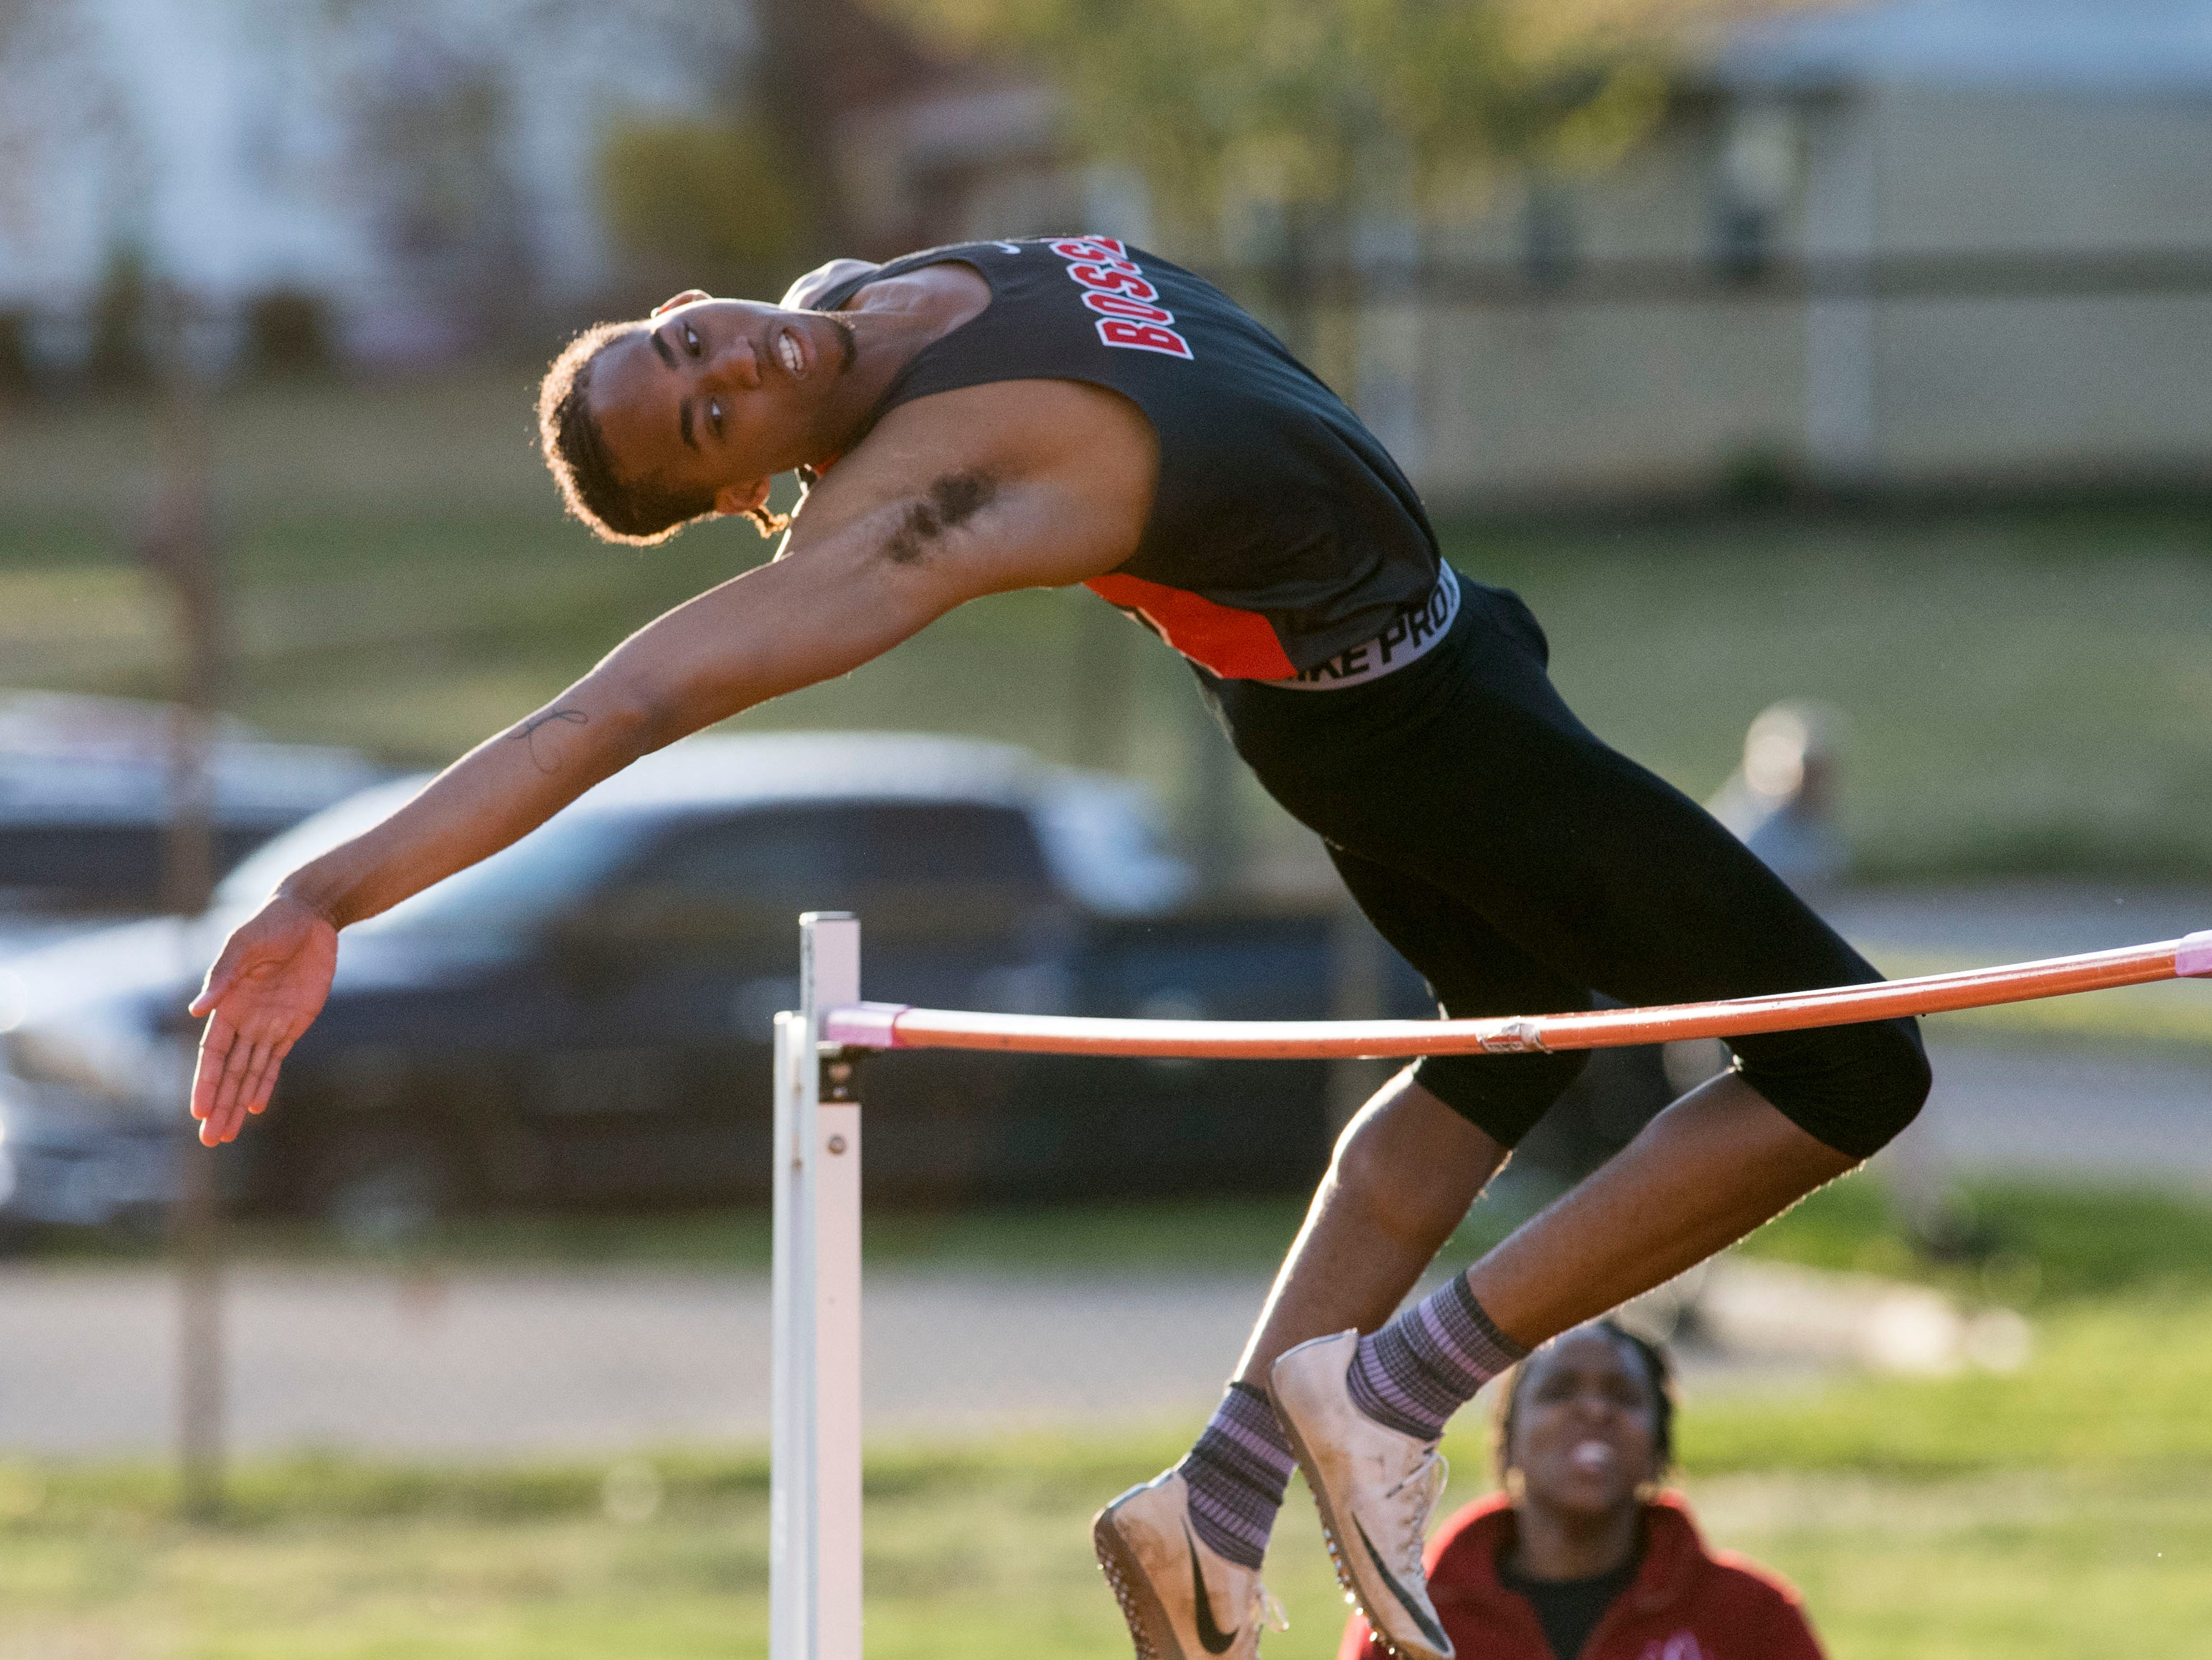 Bosse's George Madison clears the pole in the high jump event during the 2019 City Track and Field meet at Central High School Friday, April 12, 2019.